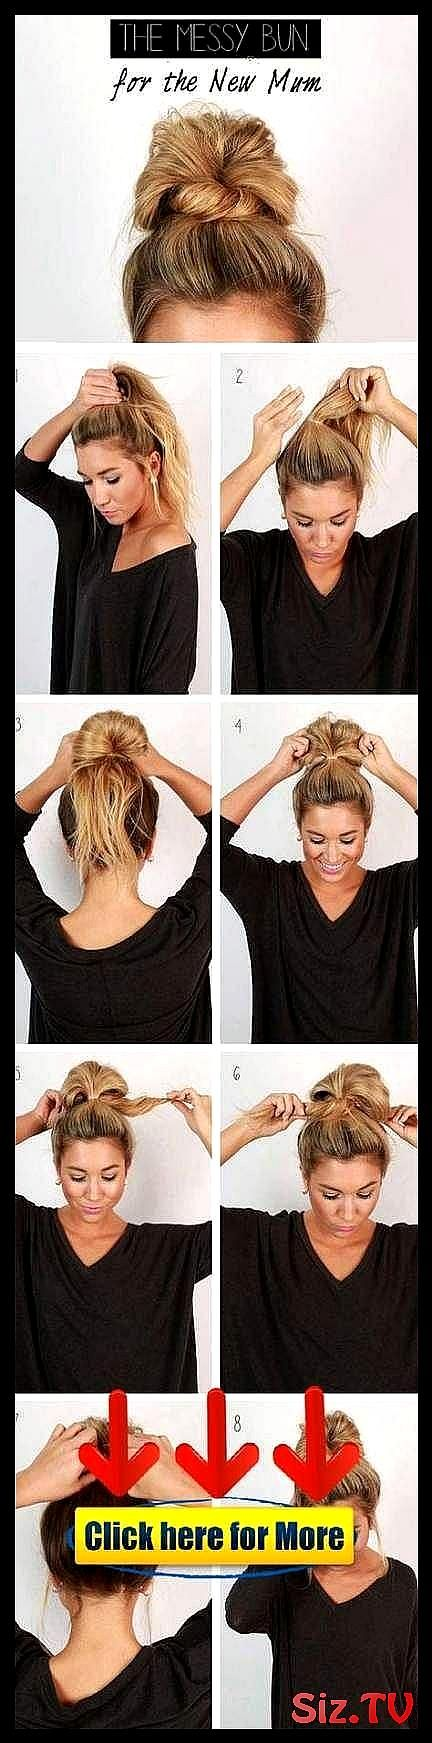 21 Trendy Ideas Hair Styles For School Medium Hair Messy Buns Top Knot 21 Trendy Ideas Hair Styles For School Medium Hair Messy Buns Top Knot Hair me21 Trendy Ideas Hair Styles For School Medium Hair Messy Buns Top Knot 21 Trendy Ideas Hair Styles For School Medium Hair Messy Buns Top Knot Hair meMessy Bun Save Images Messy Bun 21 Trendy Ideas Hair Styles For School Medium Hair Messy Buns Top Knot 21 Trendy Ideas Hair Styles #ideas #medium #messy #messybuntopknotshorthair #school #styles #trendy #topknotbunhowto